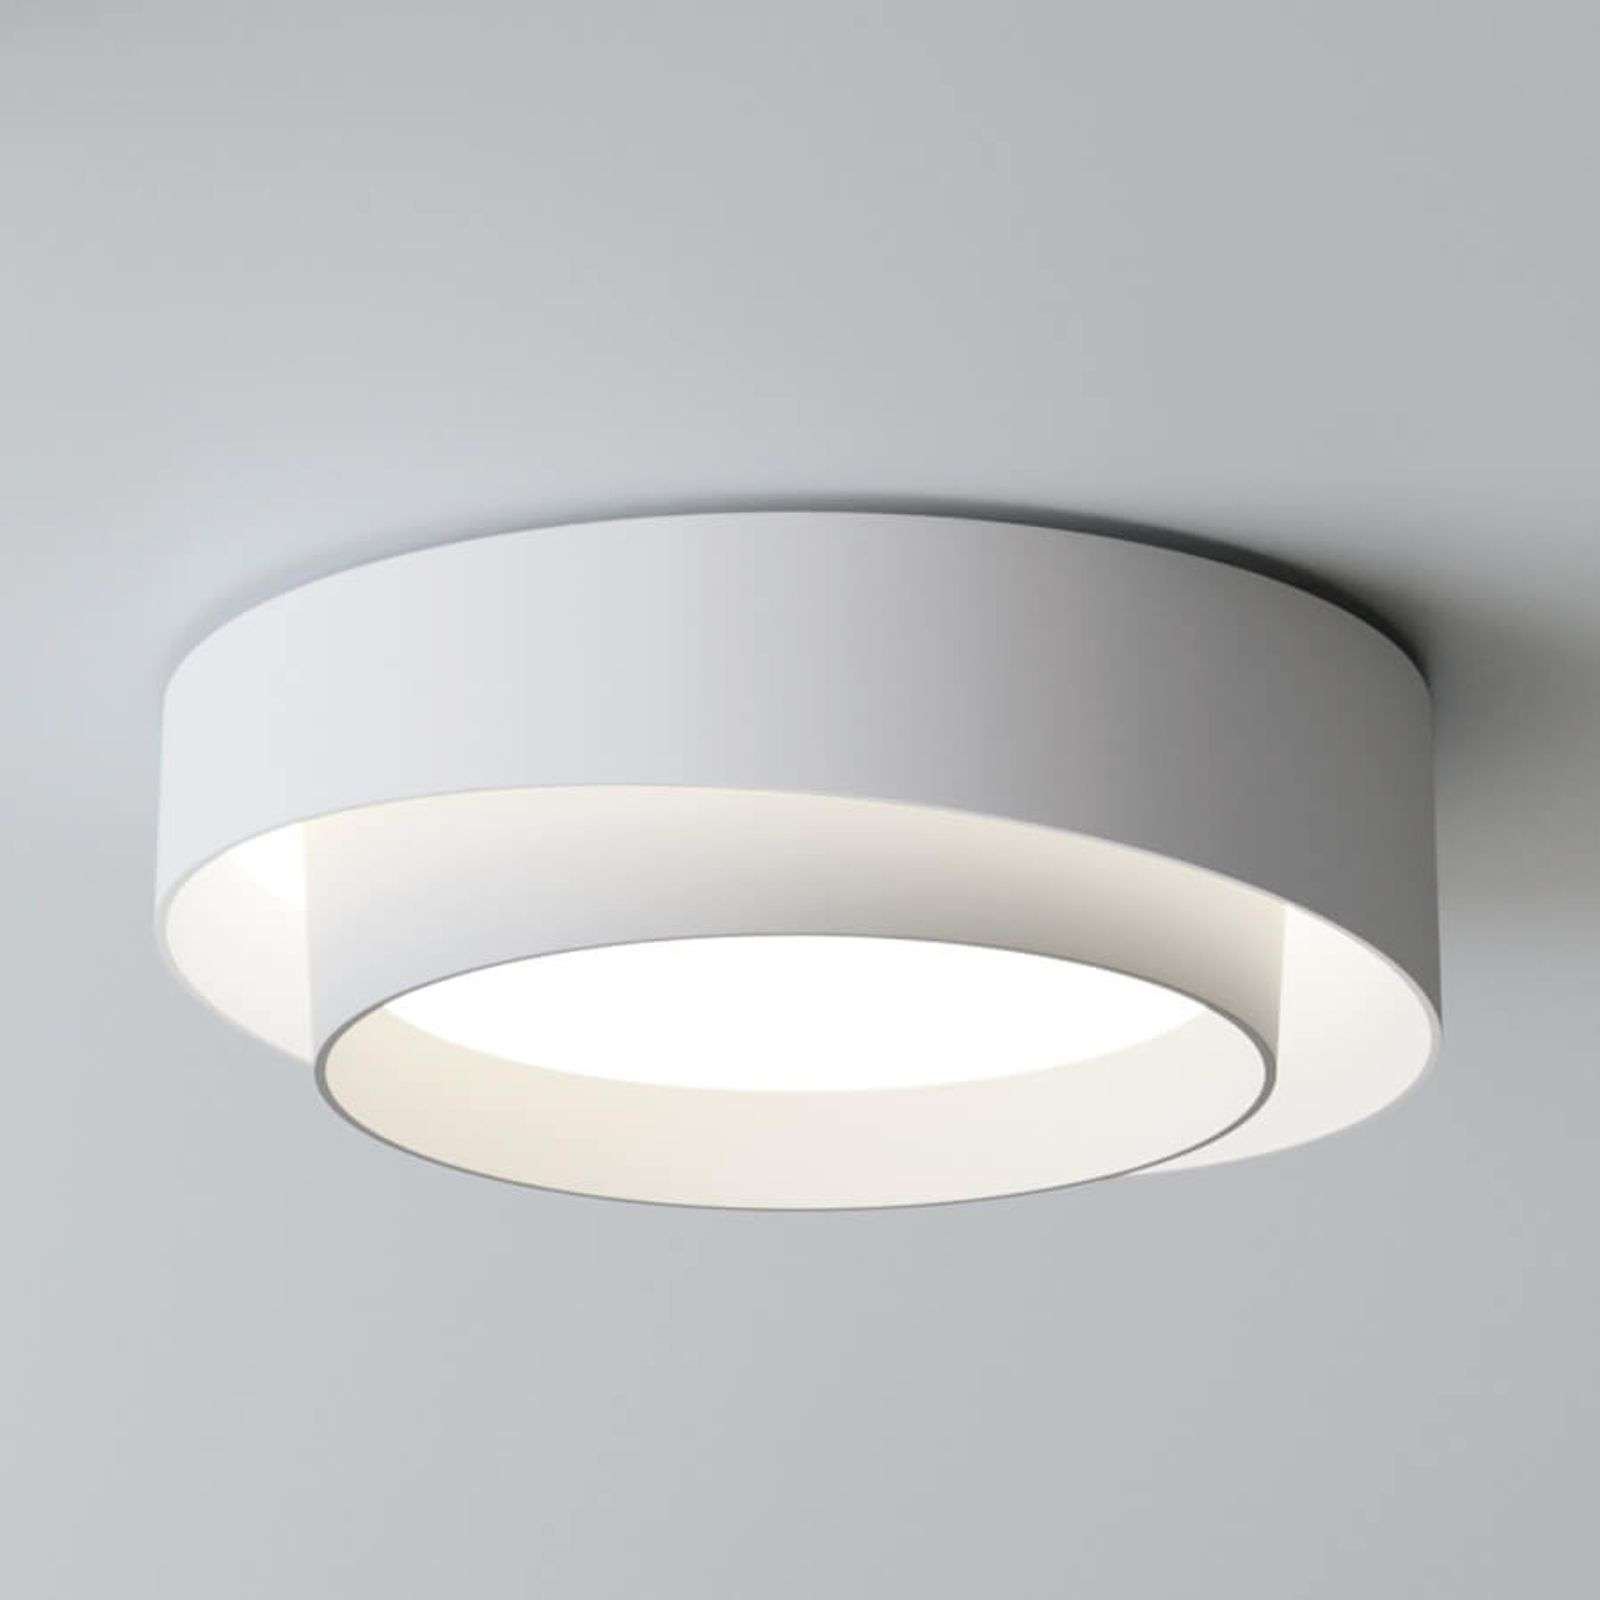 Witte led ontwerp plafondlamp Centric